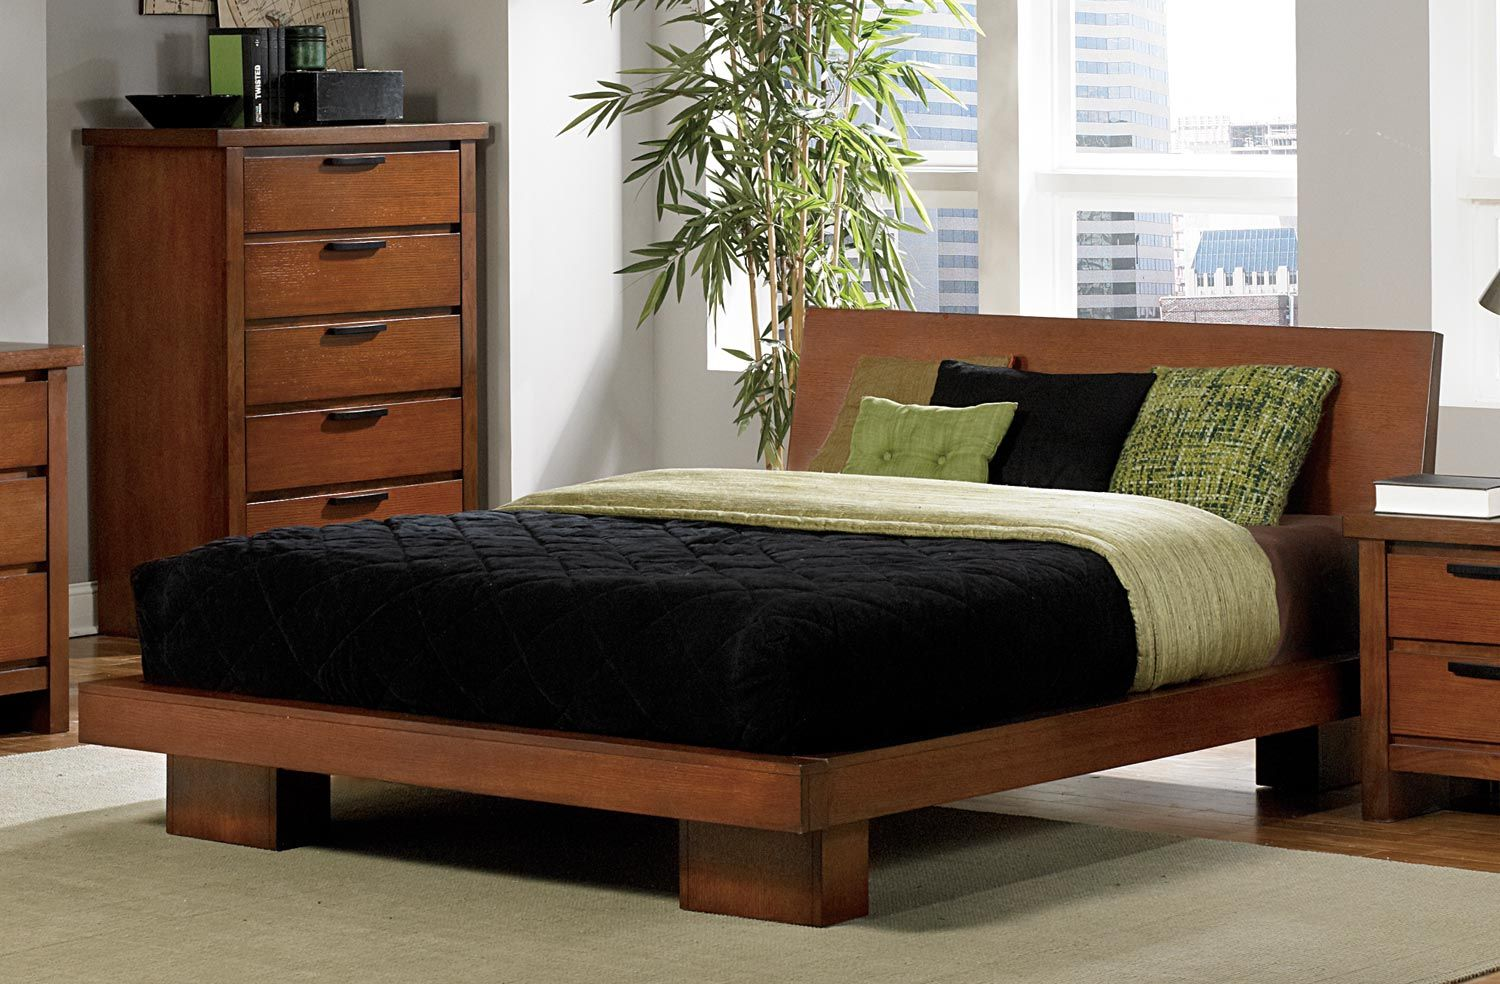 Homelegance Kobe Platform Bed Dark Oak Price 574 00